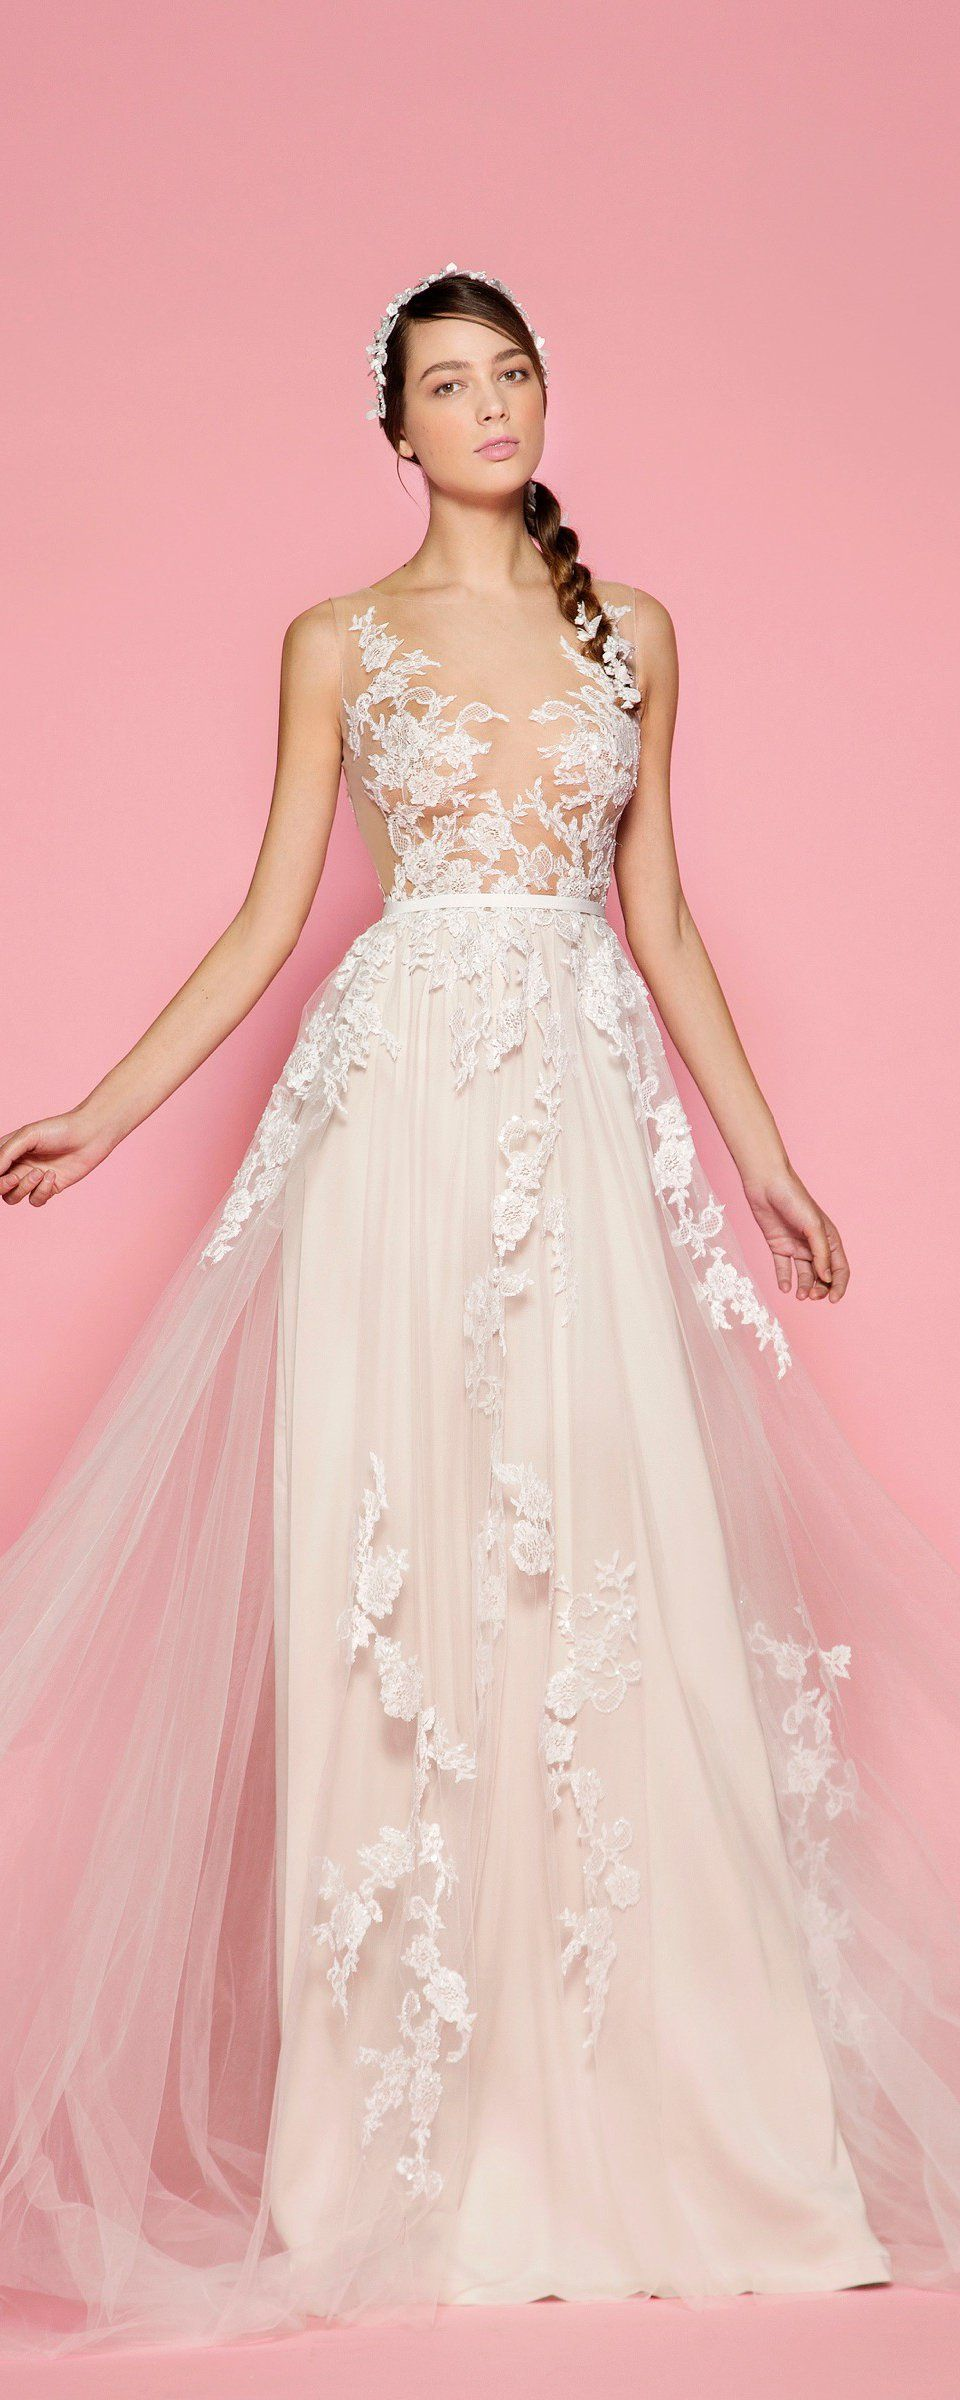 Georges Hobeika Printemps-été 2018 - Mariage | Wedding dress, Gowns ...